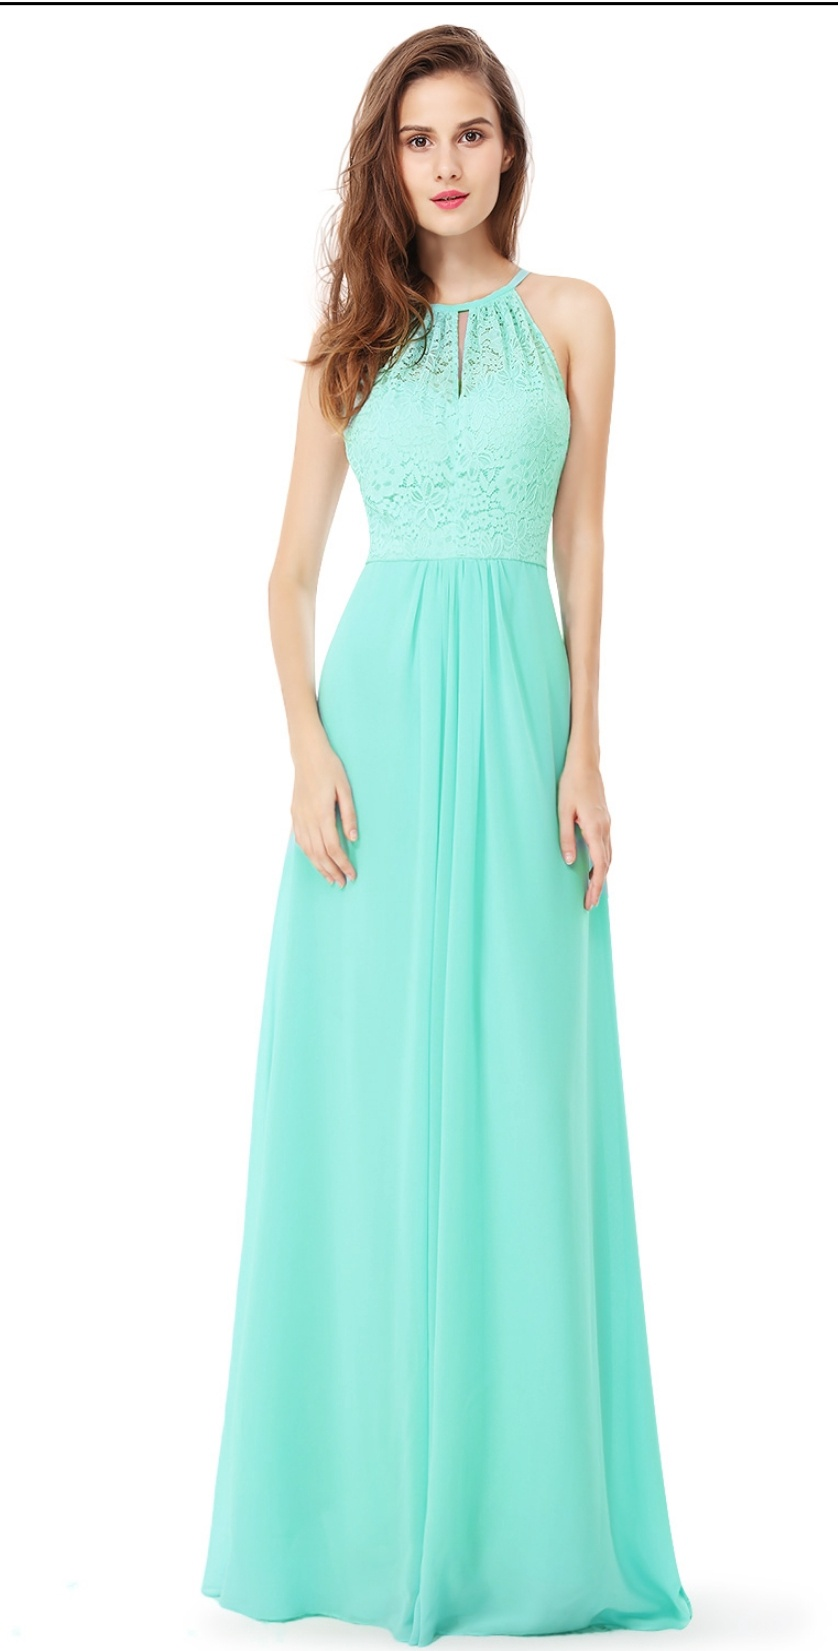 Floor Length Gown - Turquoise Green Lace Top Maxi Dress, NEW